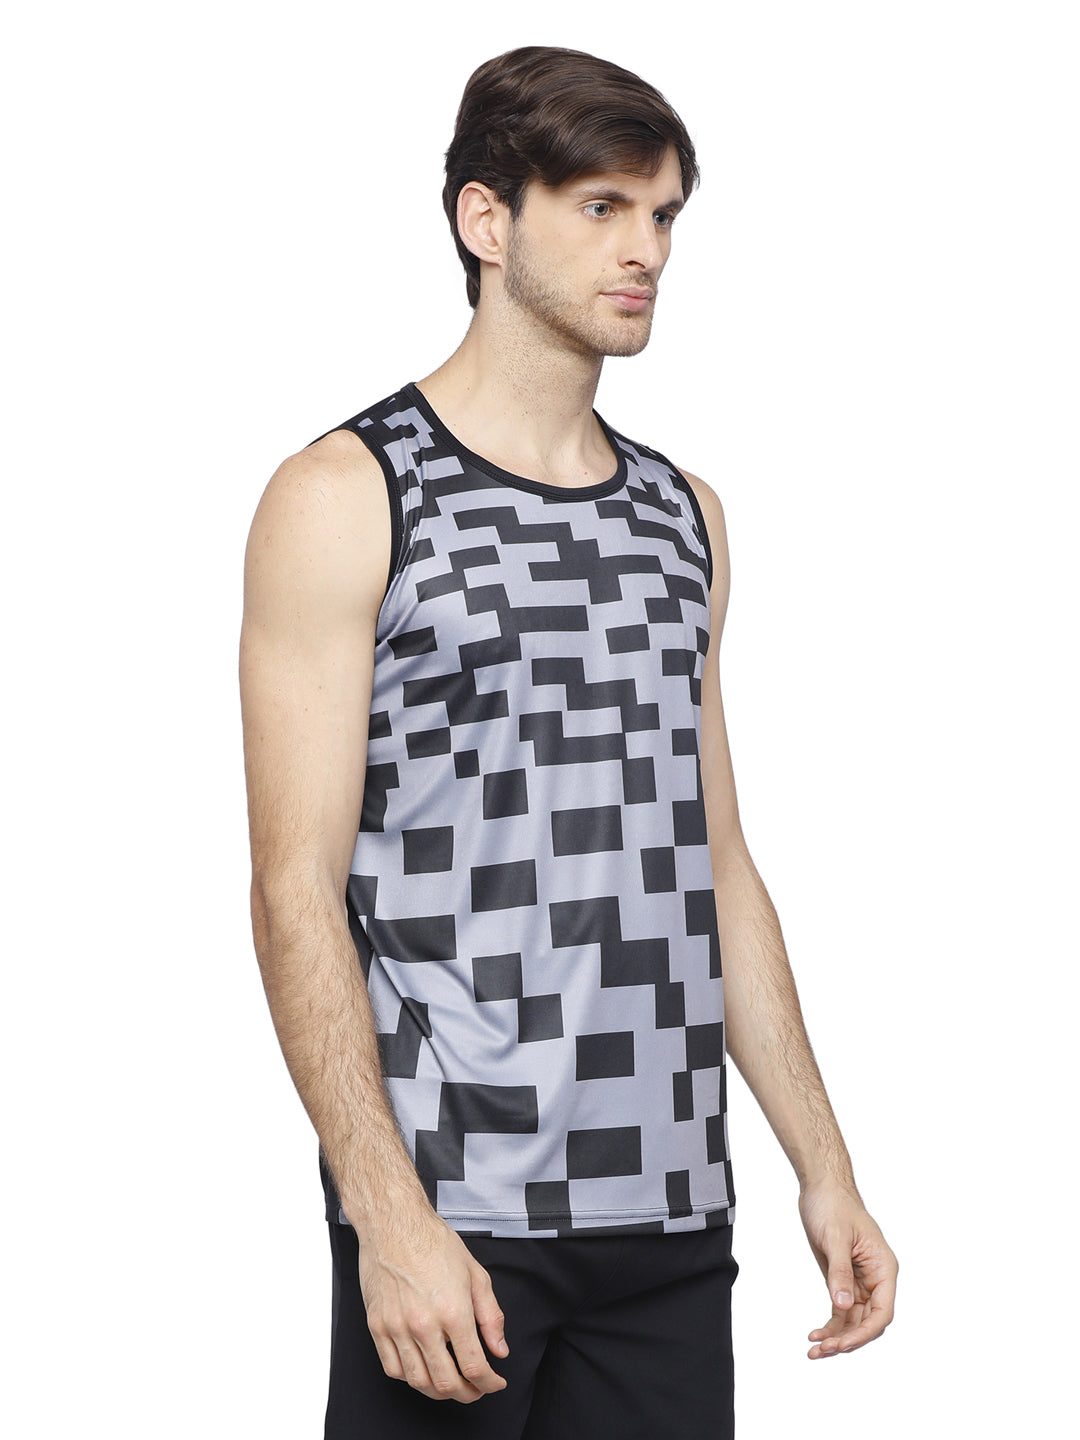 Piranha Grey Sleeveless T-shirt - V313